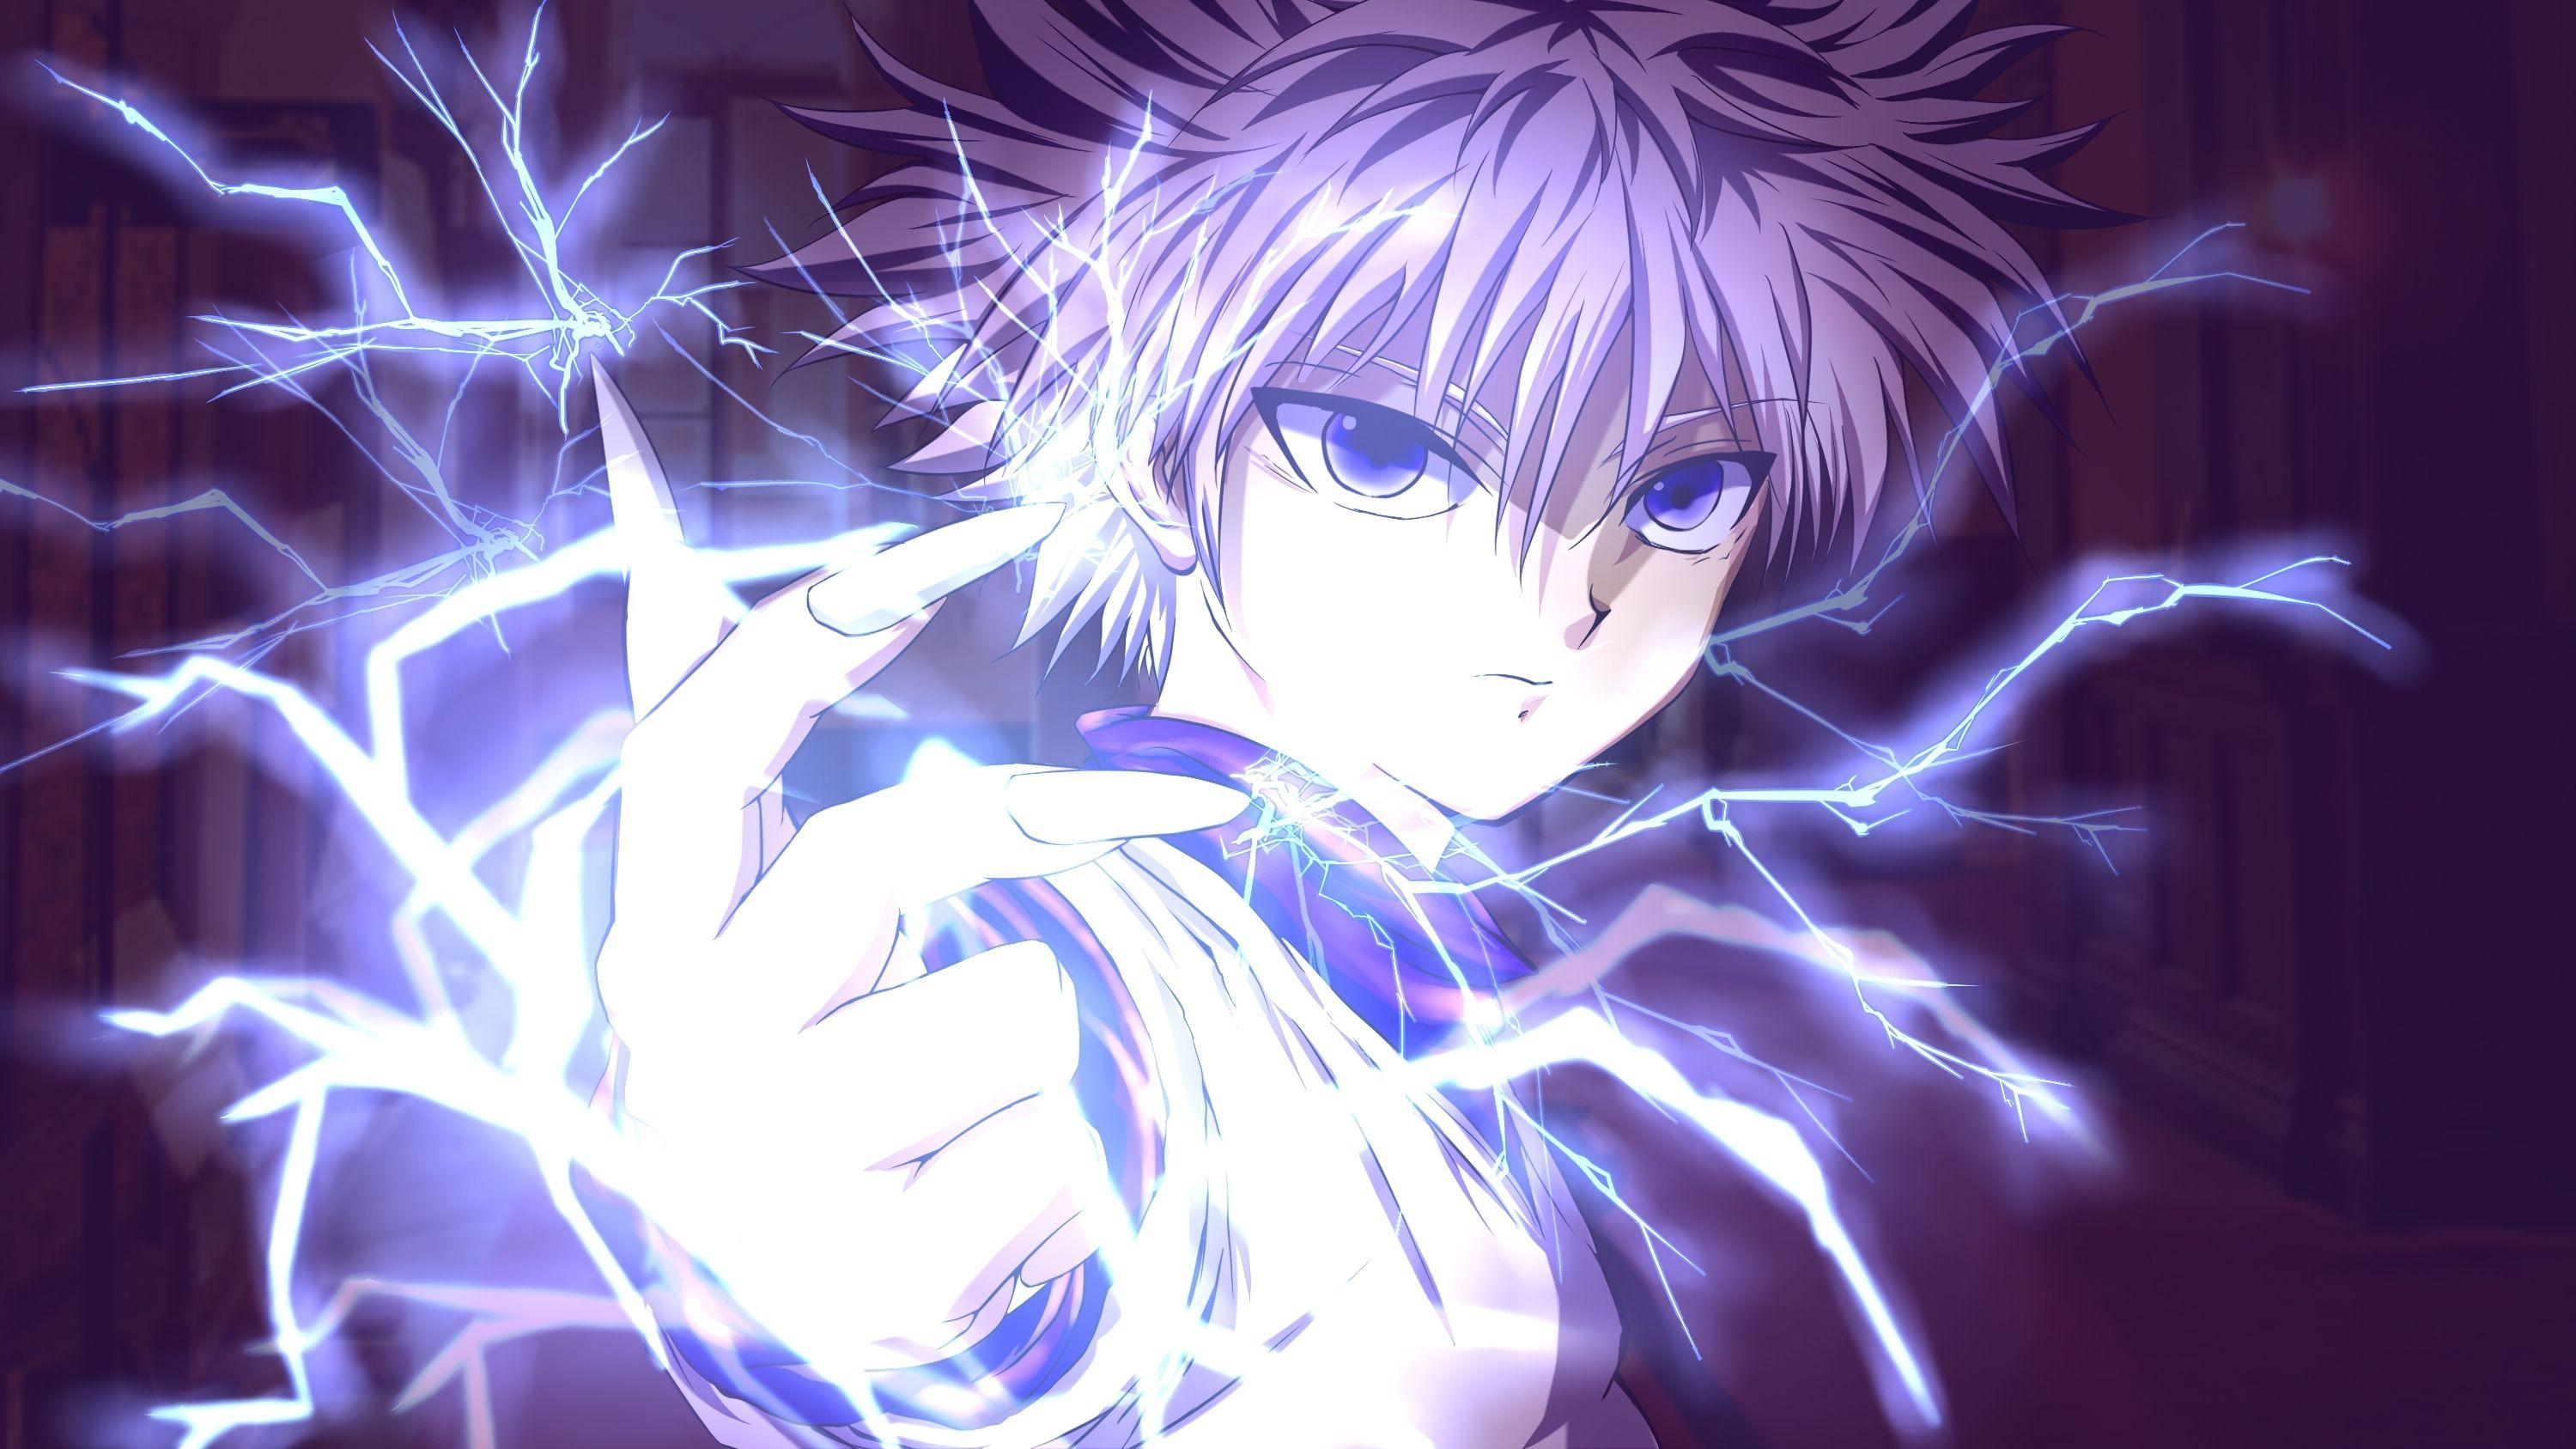 The best quality and size only with us! Hunter X Hunter Wallpapers - Wallpaper Cave